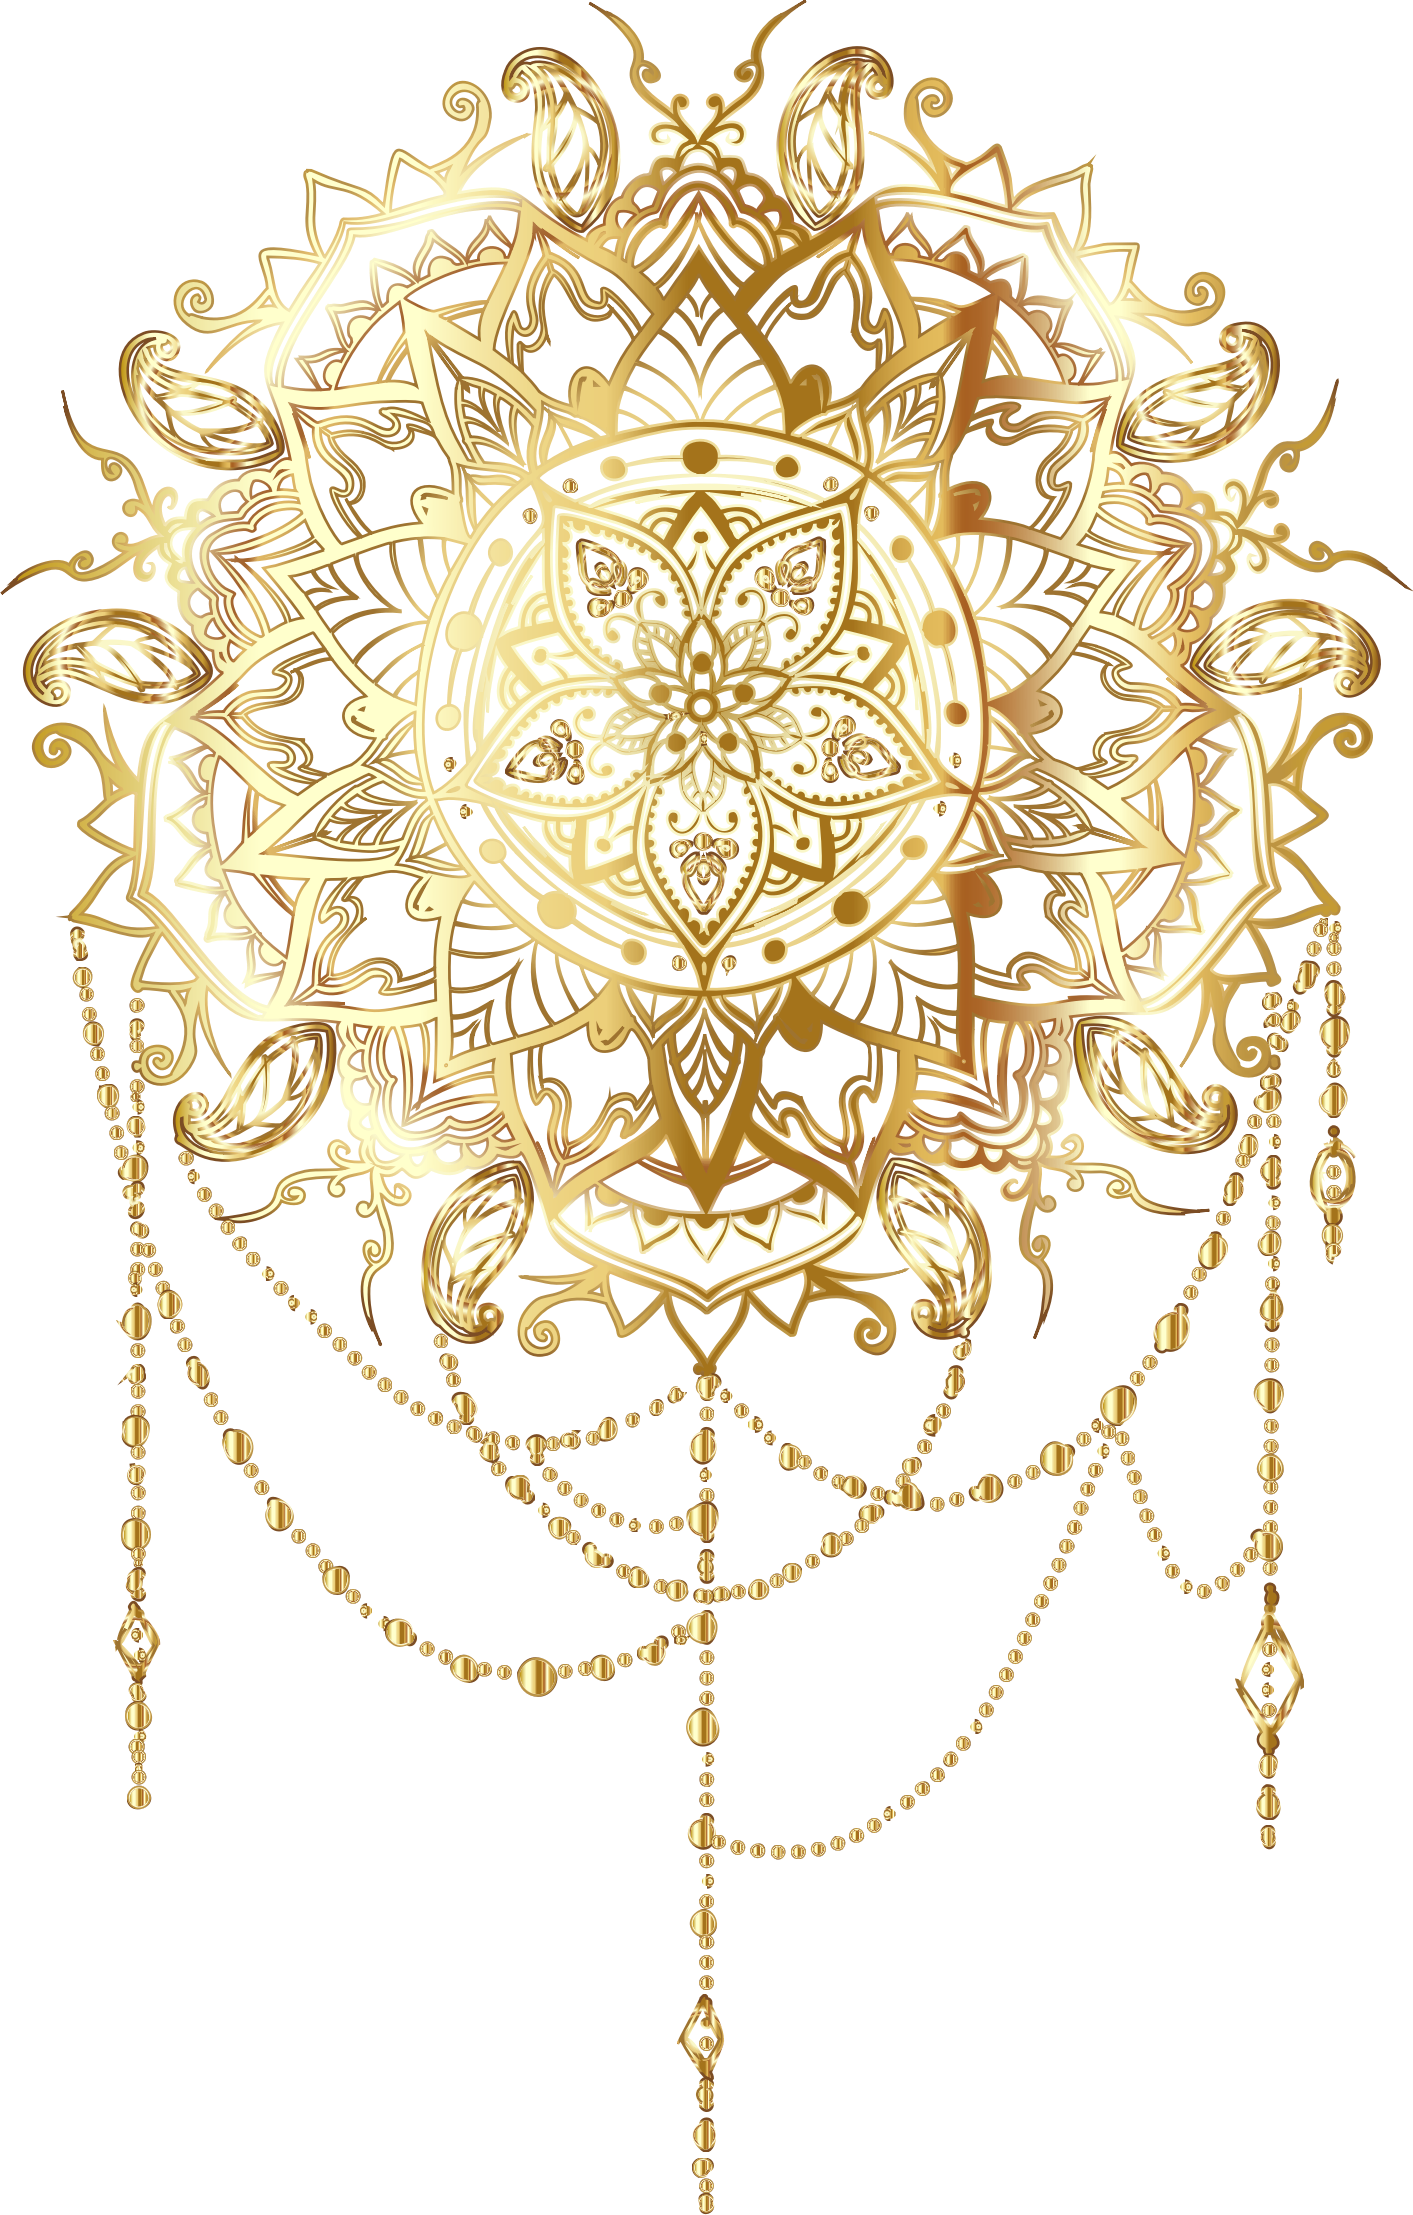 Mandala flower clipart graphic library download Clipart - Gold Intricate Floral Mandala No Background graphic library download